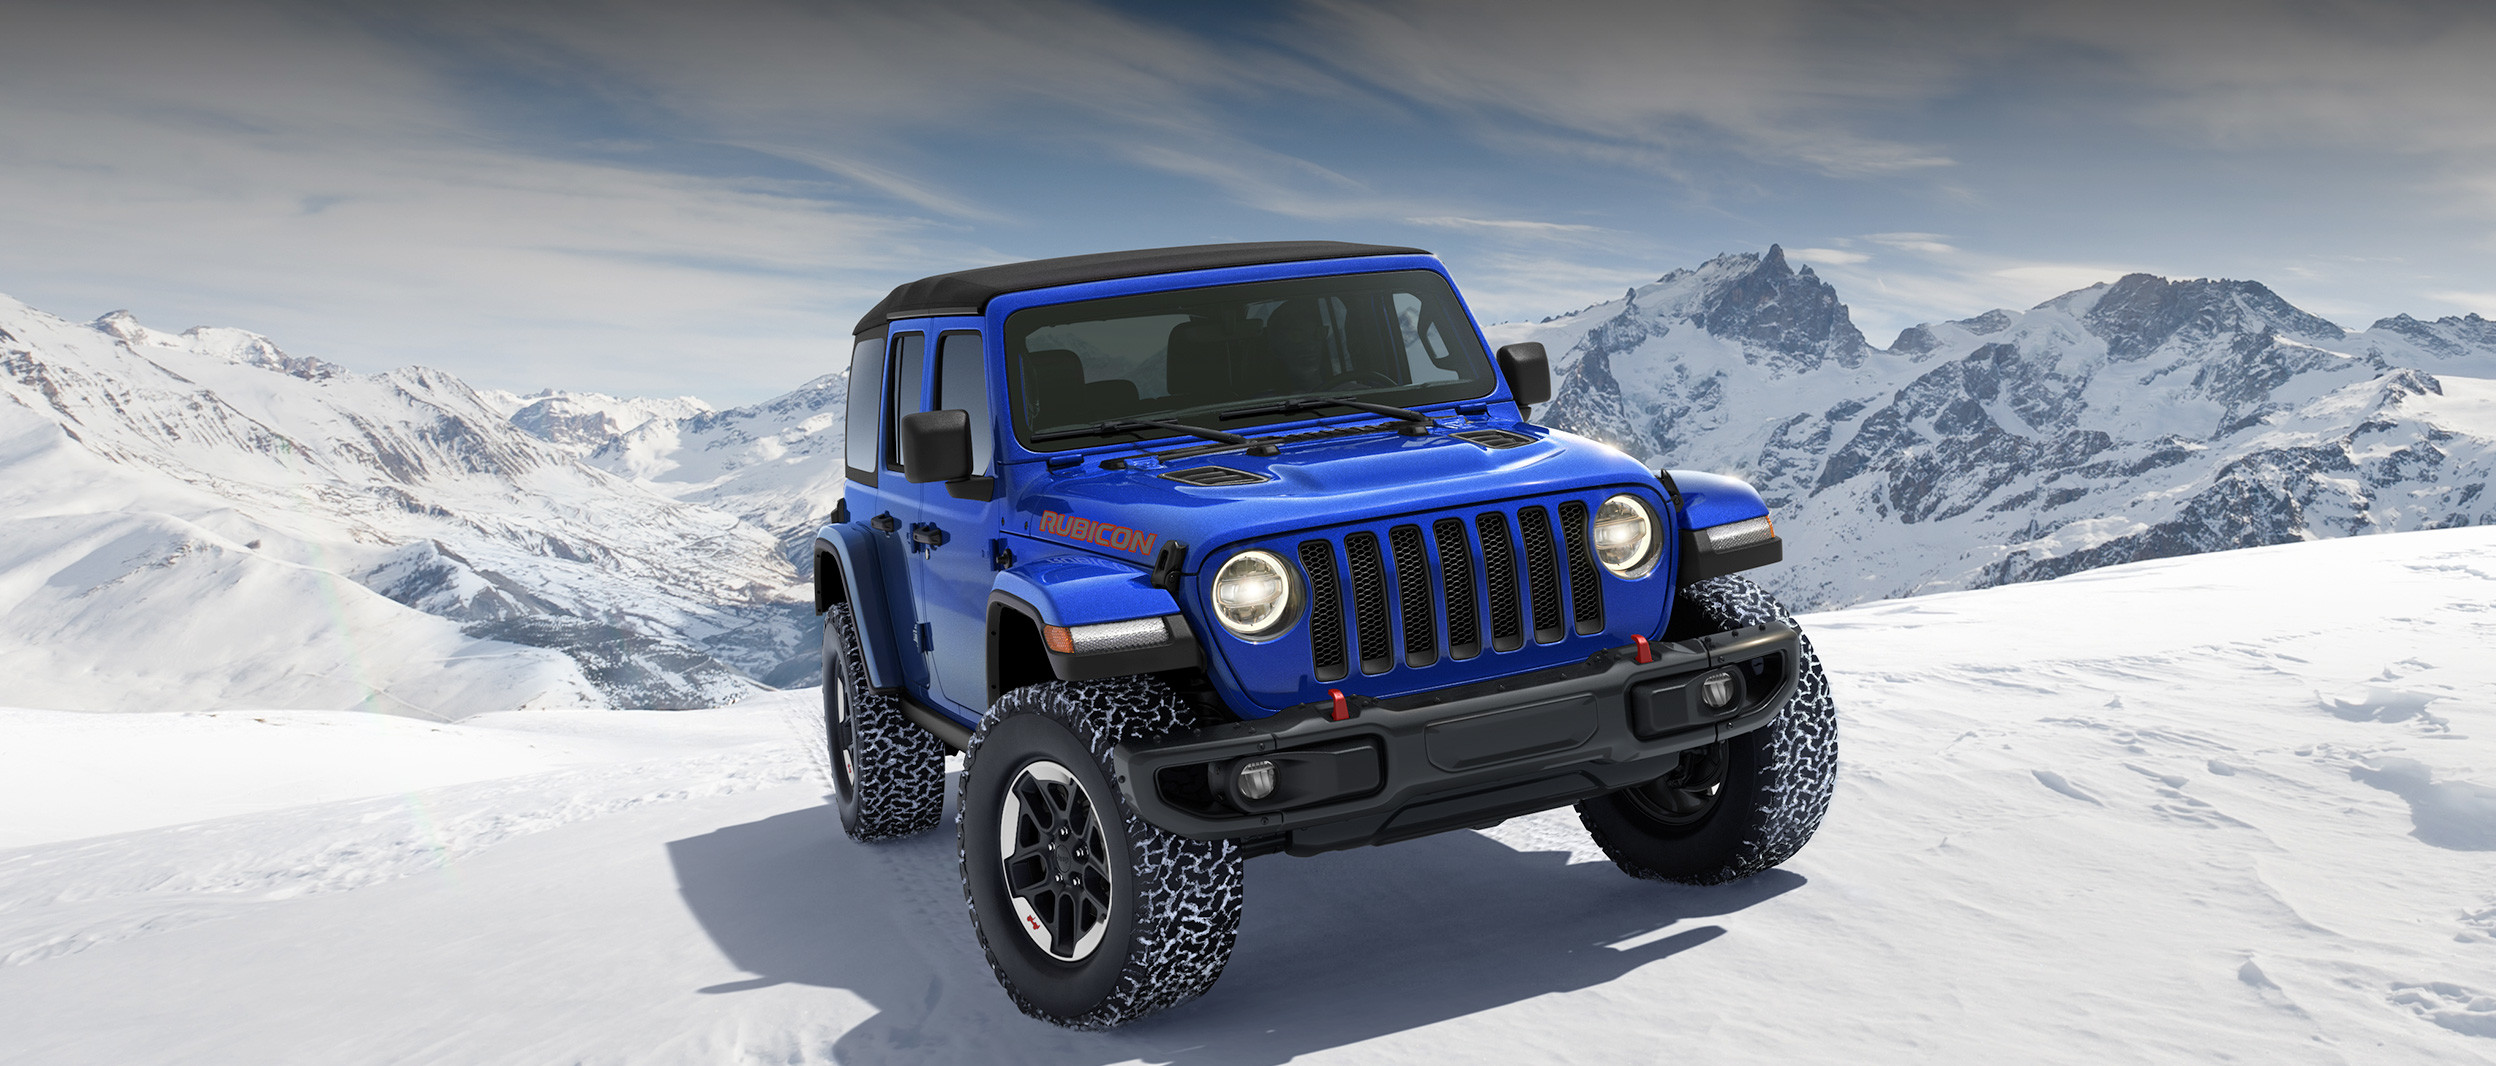 Front view of the 2020 Jeep Wrangler JL Rubicon in blue parked on a snow-covered mountain peak